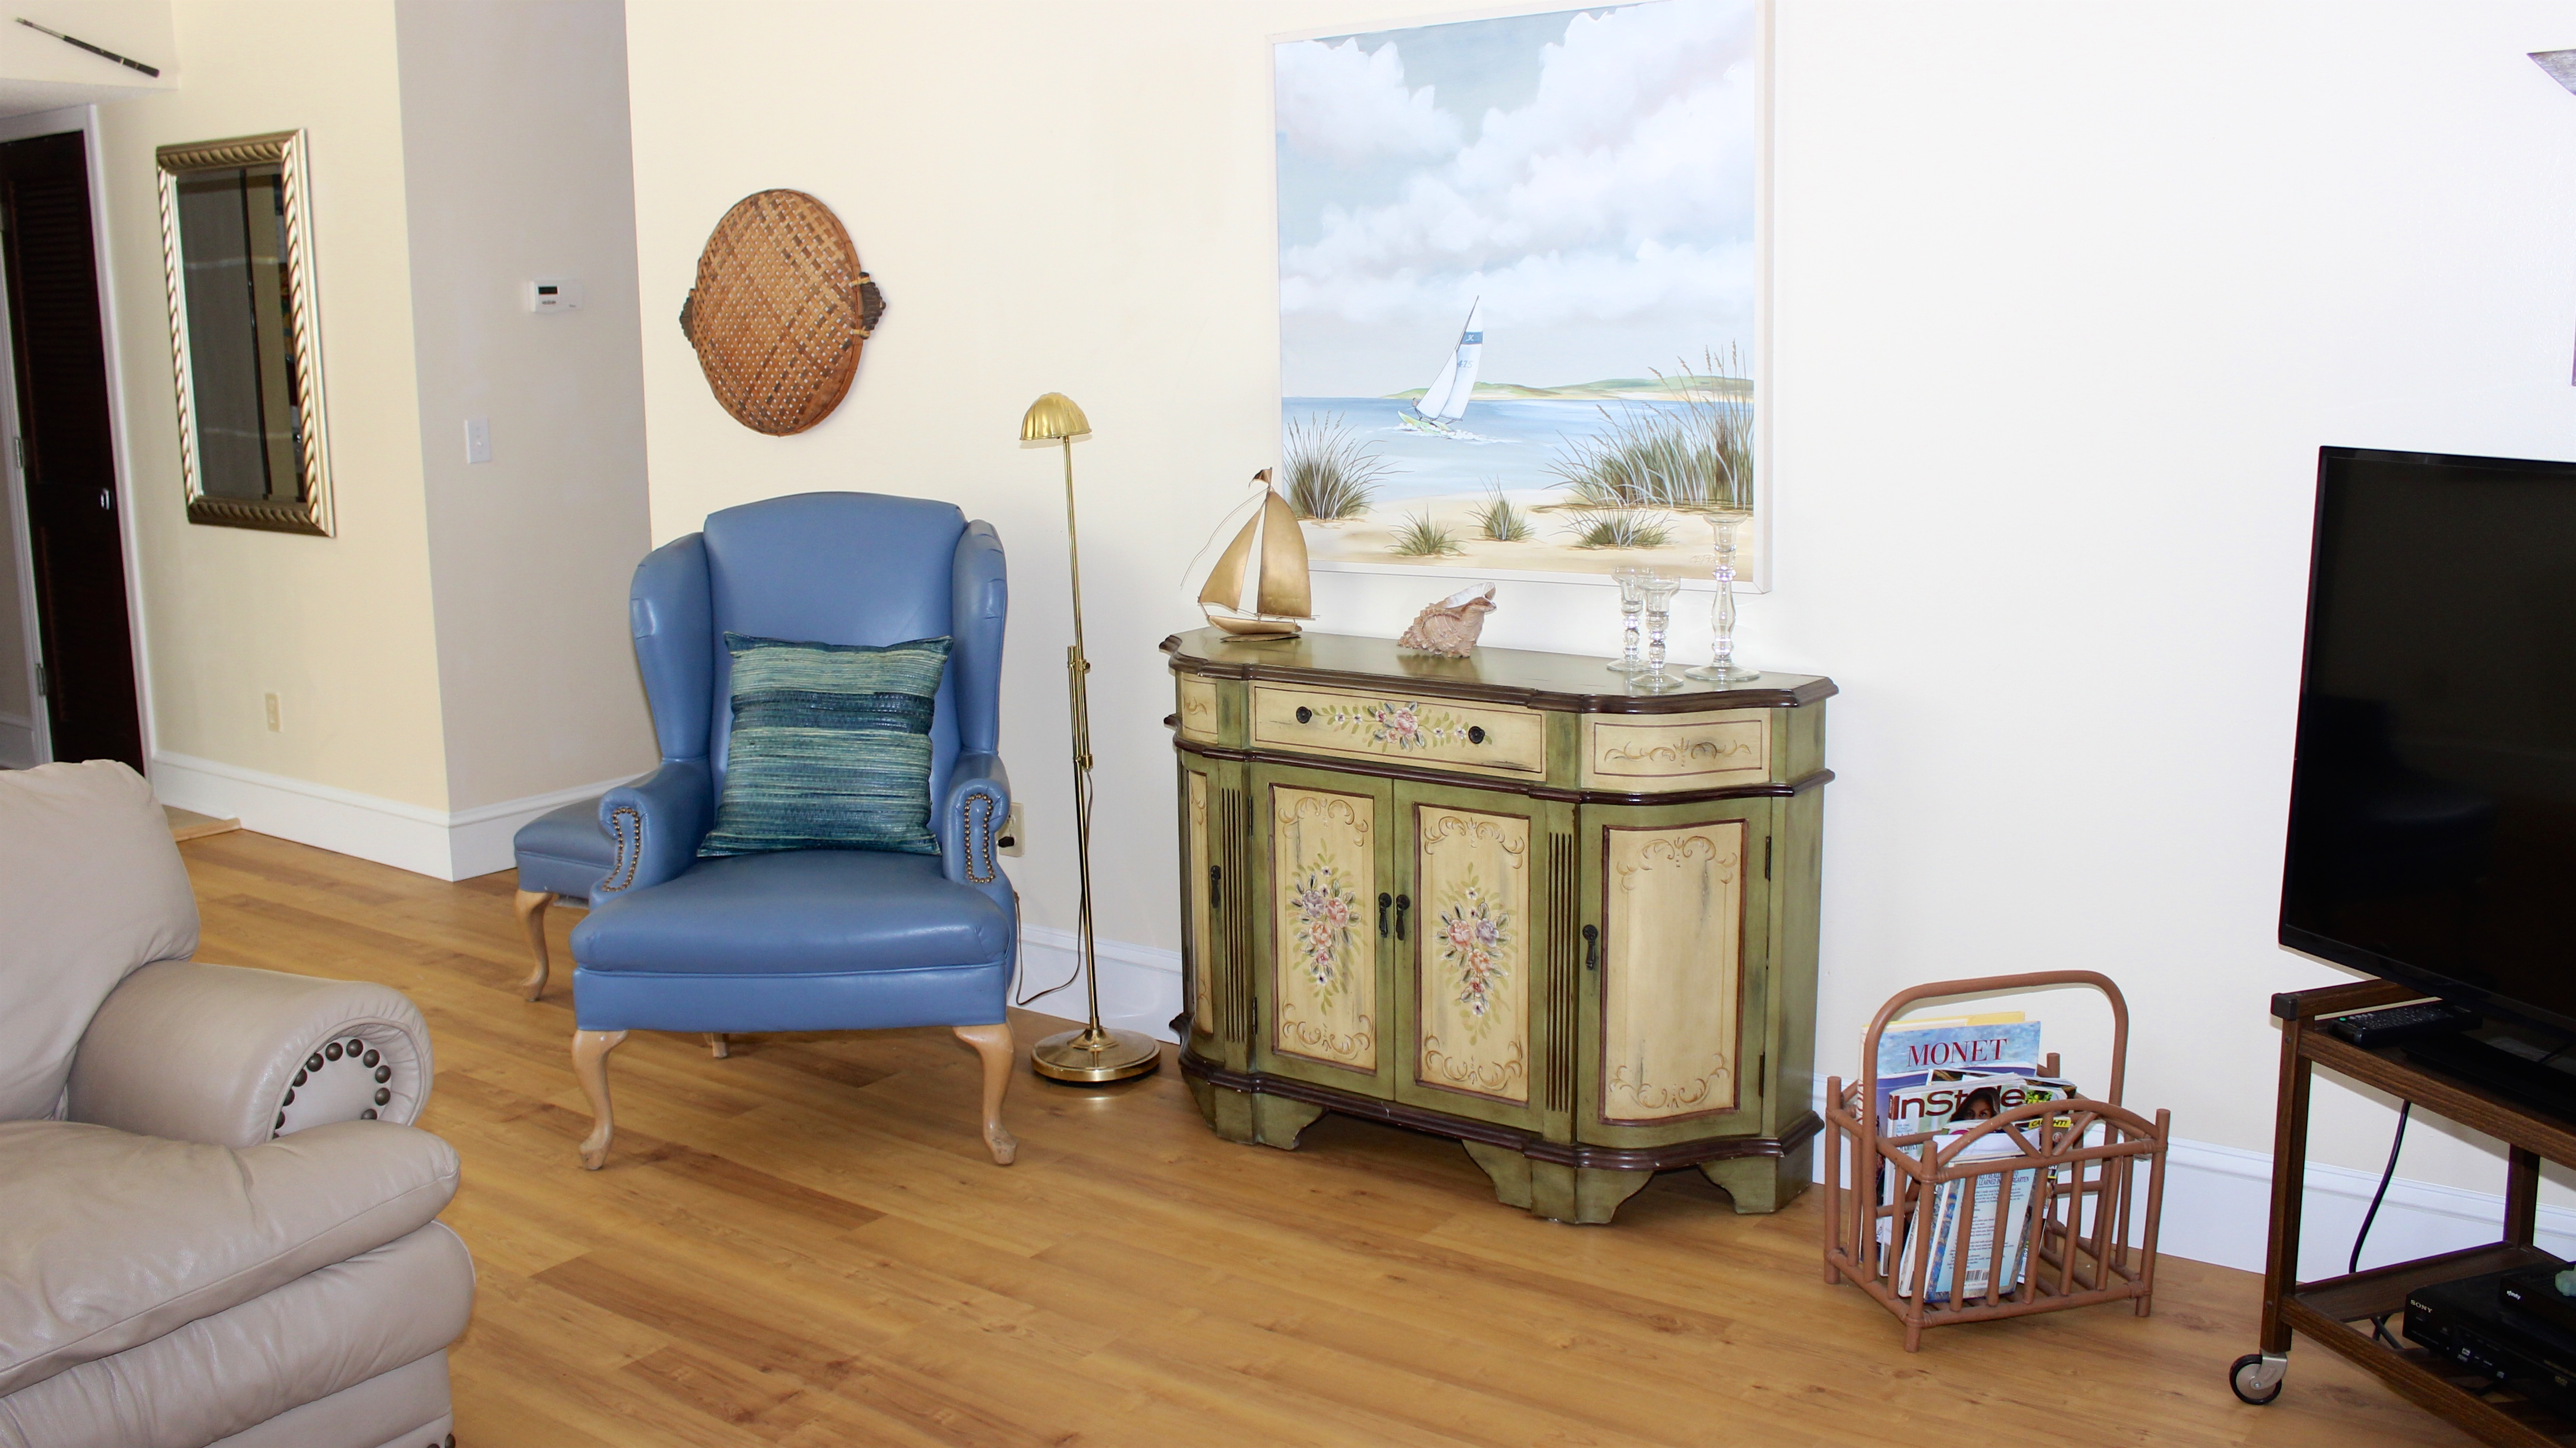 Sailboats and beach scenes grace the walls.